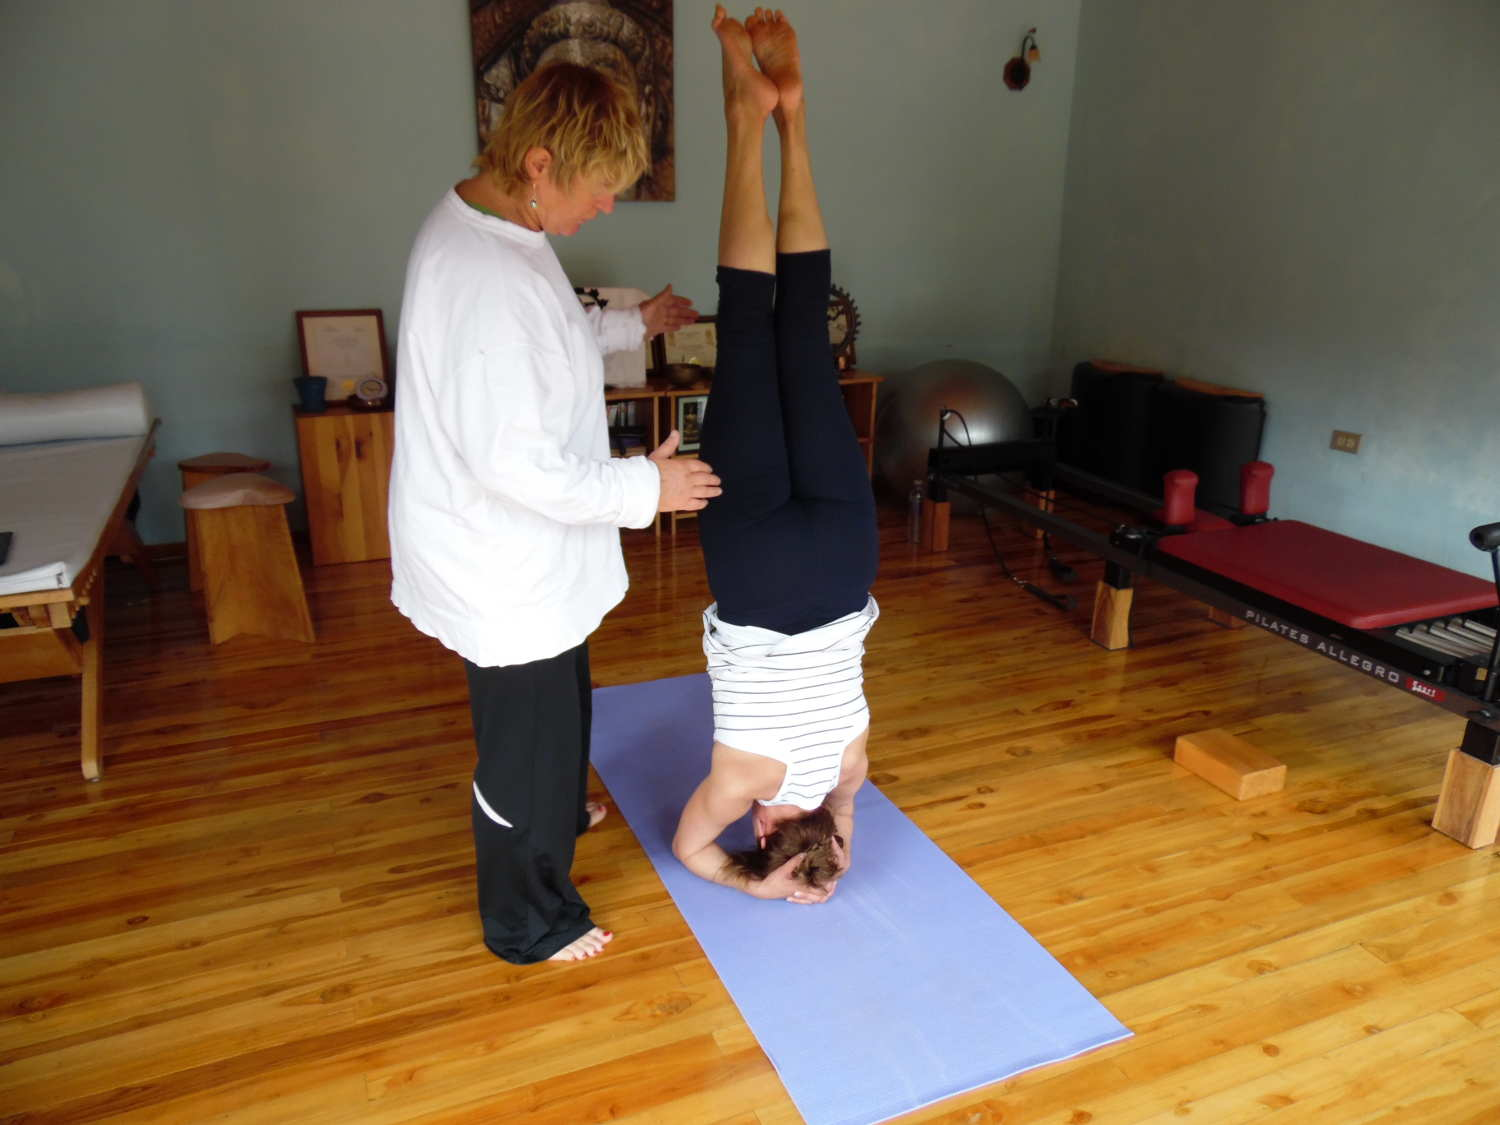 assisted headstand